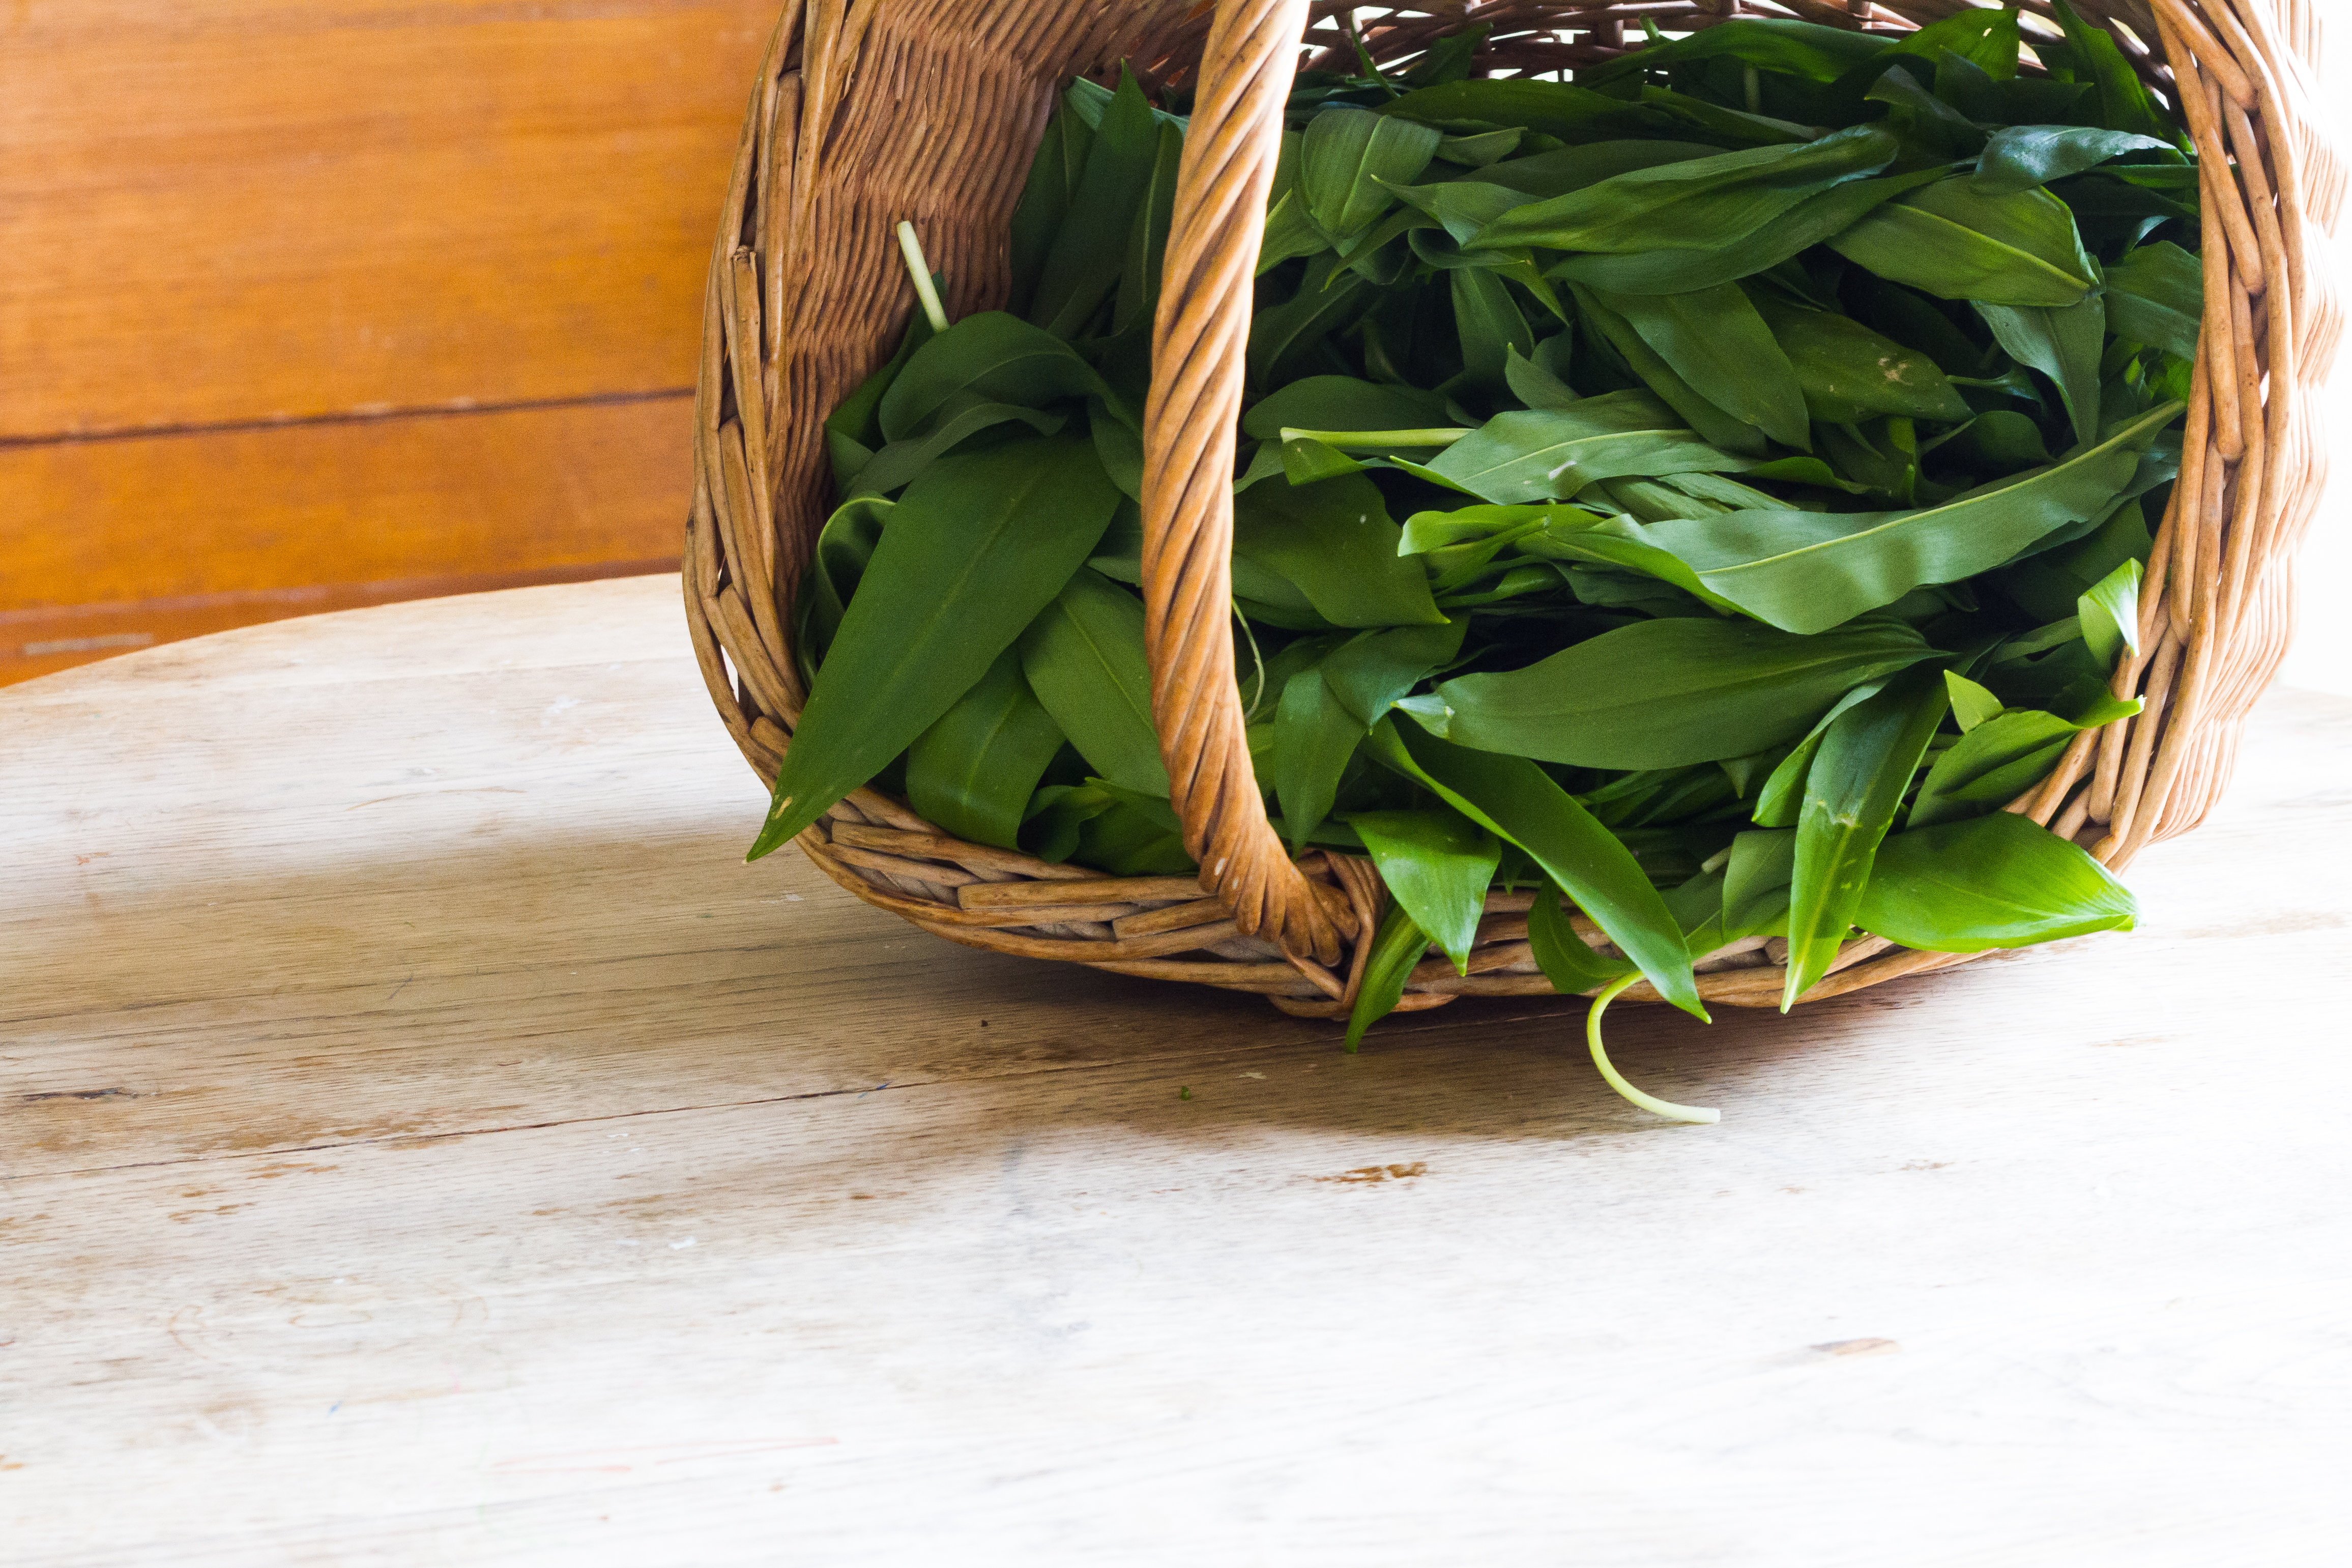 Harvested wild garlic